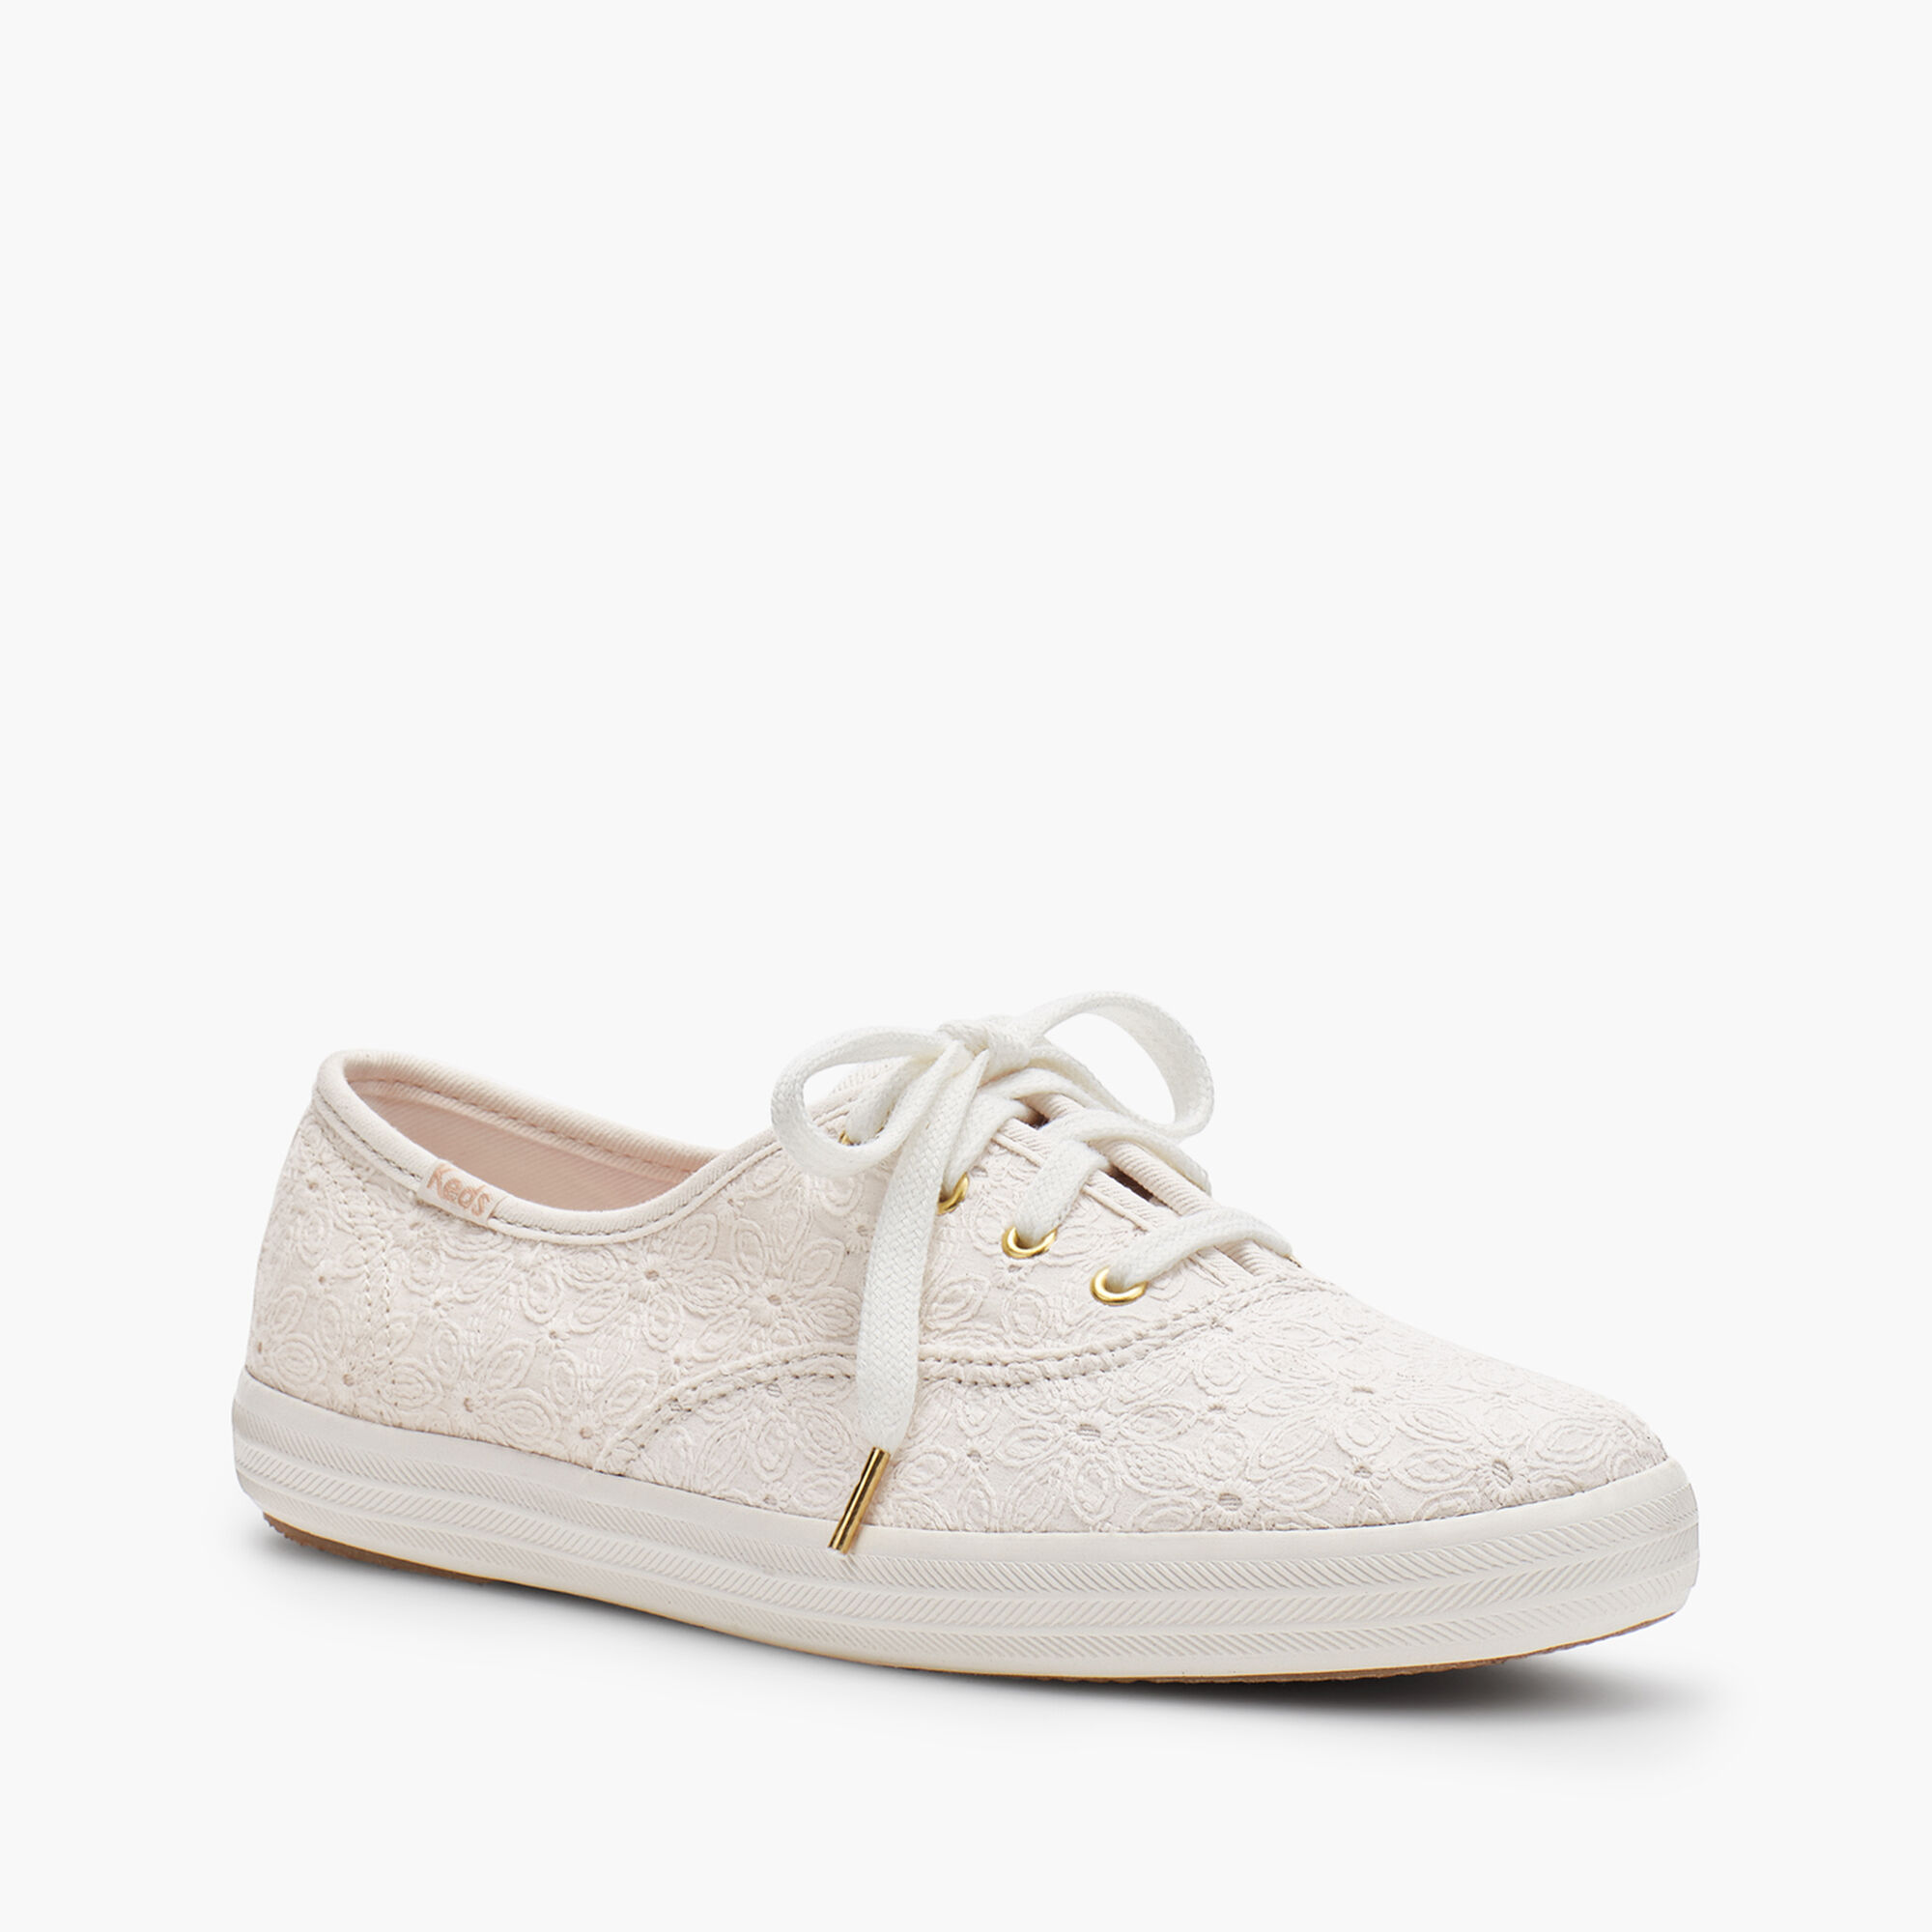 7a18f16d1530 Keds  40 TM  41  Champion Sneakers - Eyelet Opens a New Window.